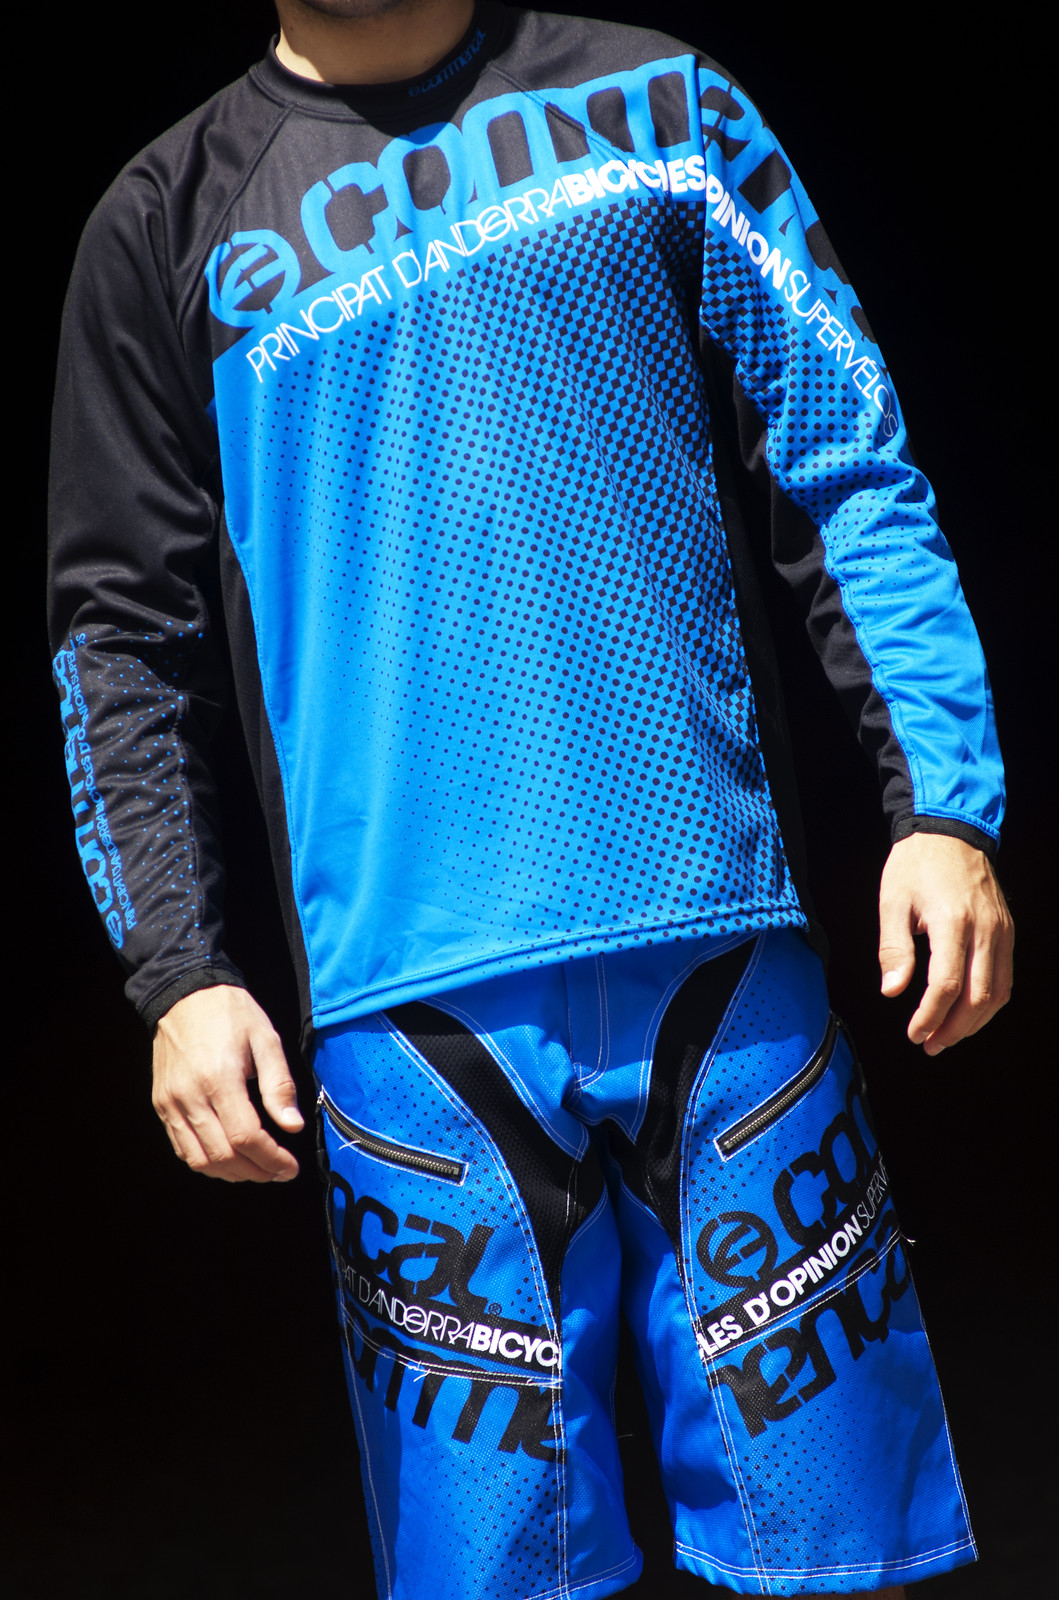 Commencal 2013 Jersey AM/DH Long Sleeve  Tsh_ML_blue